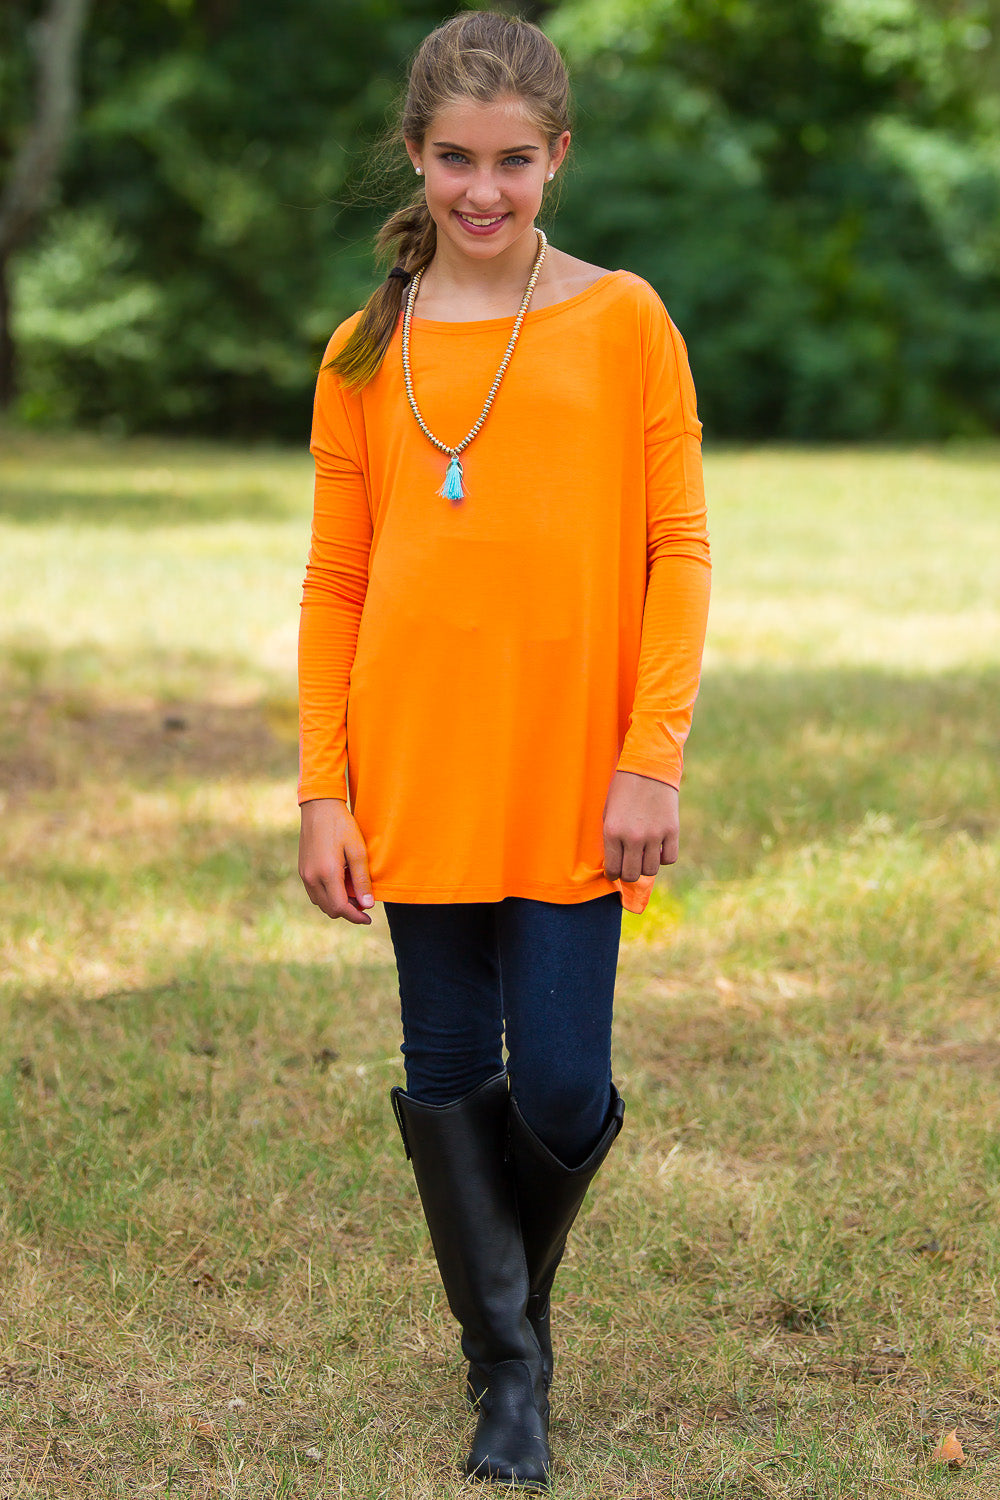 Long Sleeve Kids Piko Top - Orange - Piko Clothing